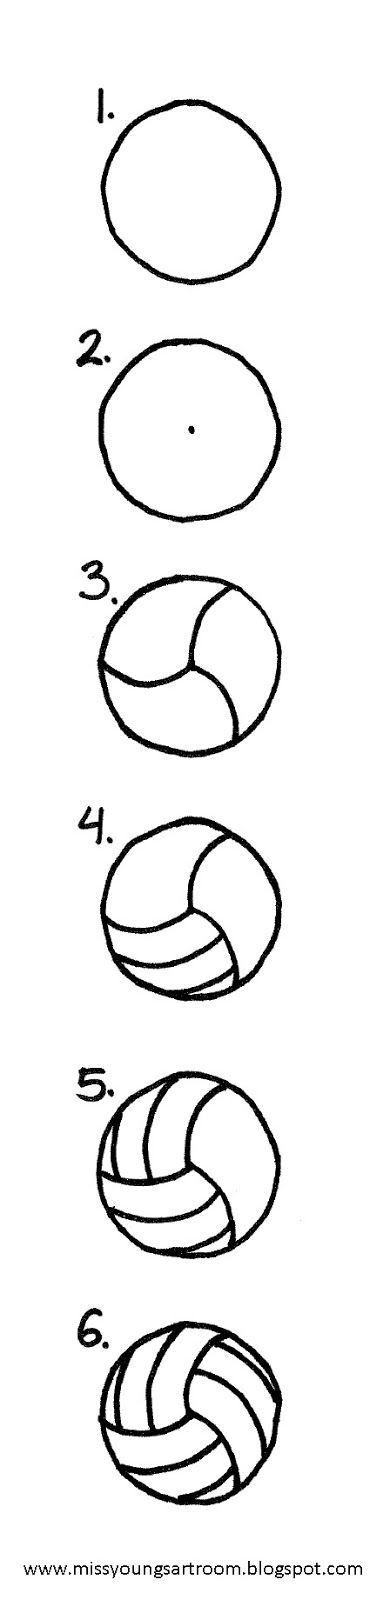 Drawing a volleyball